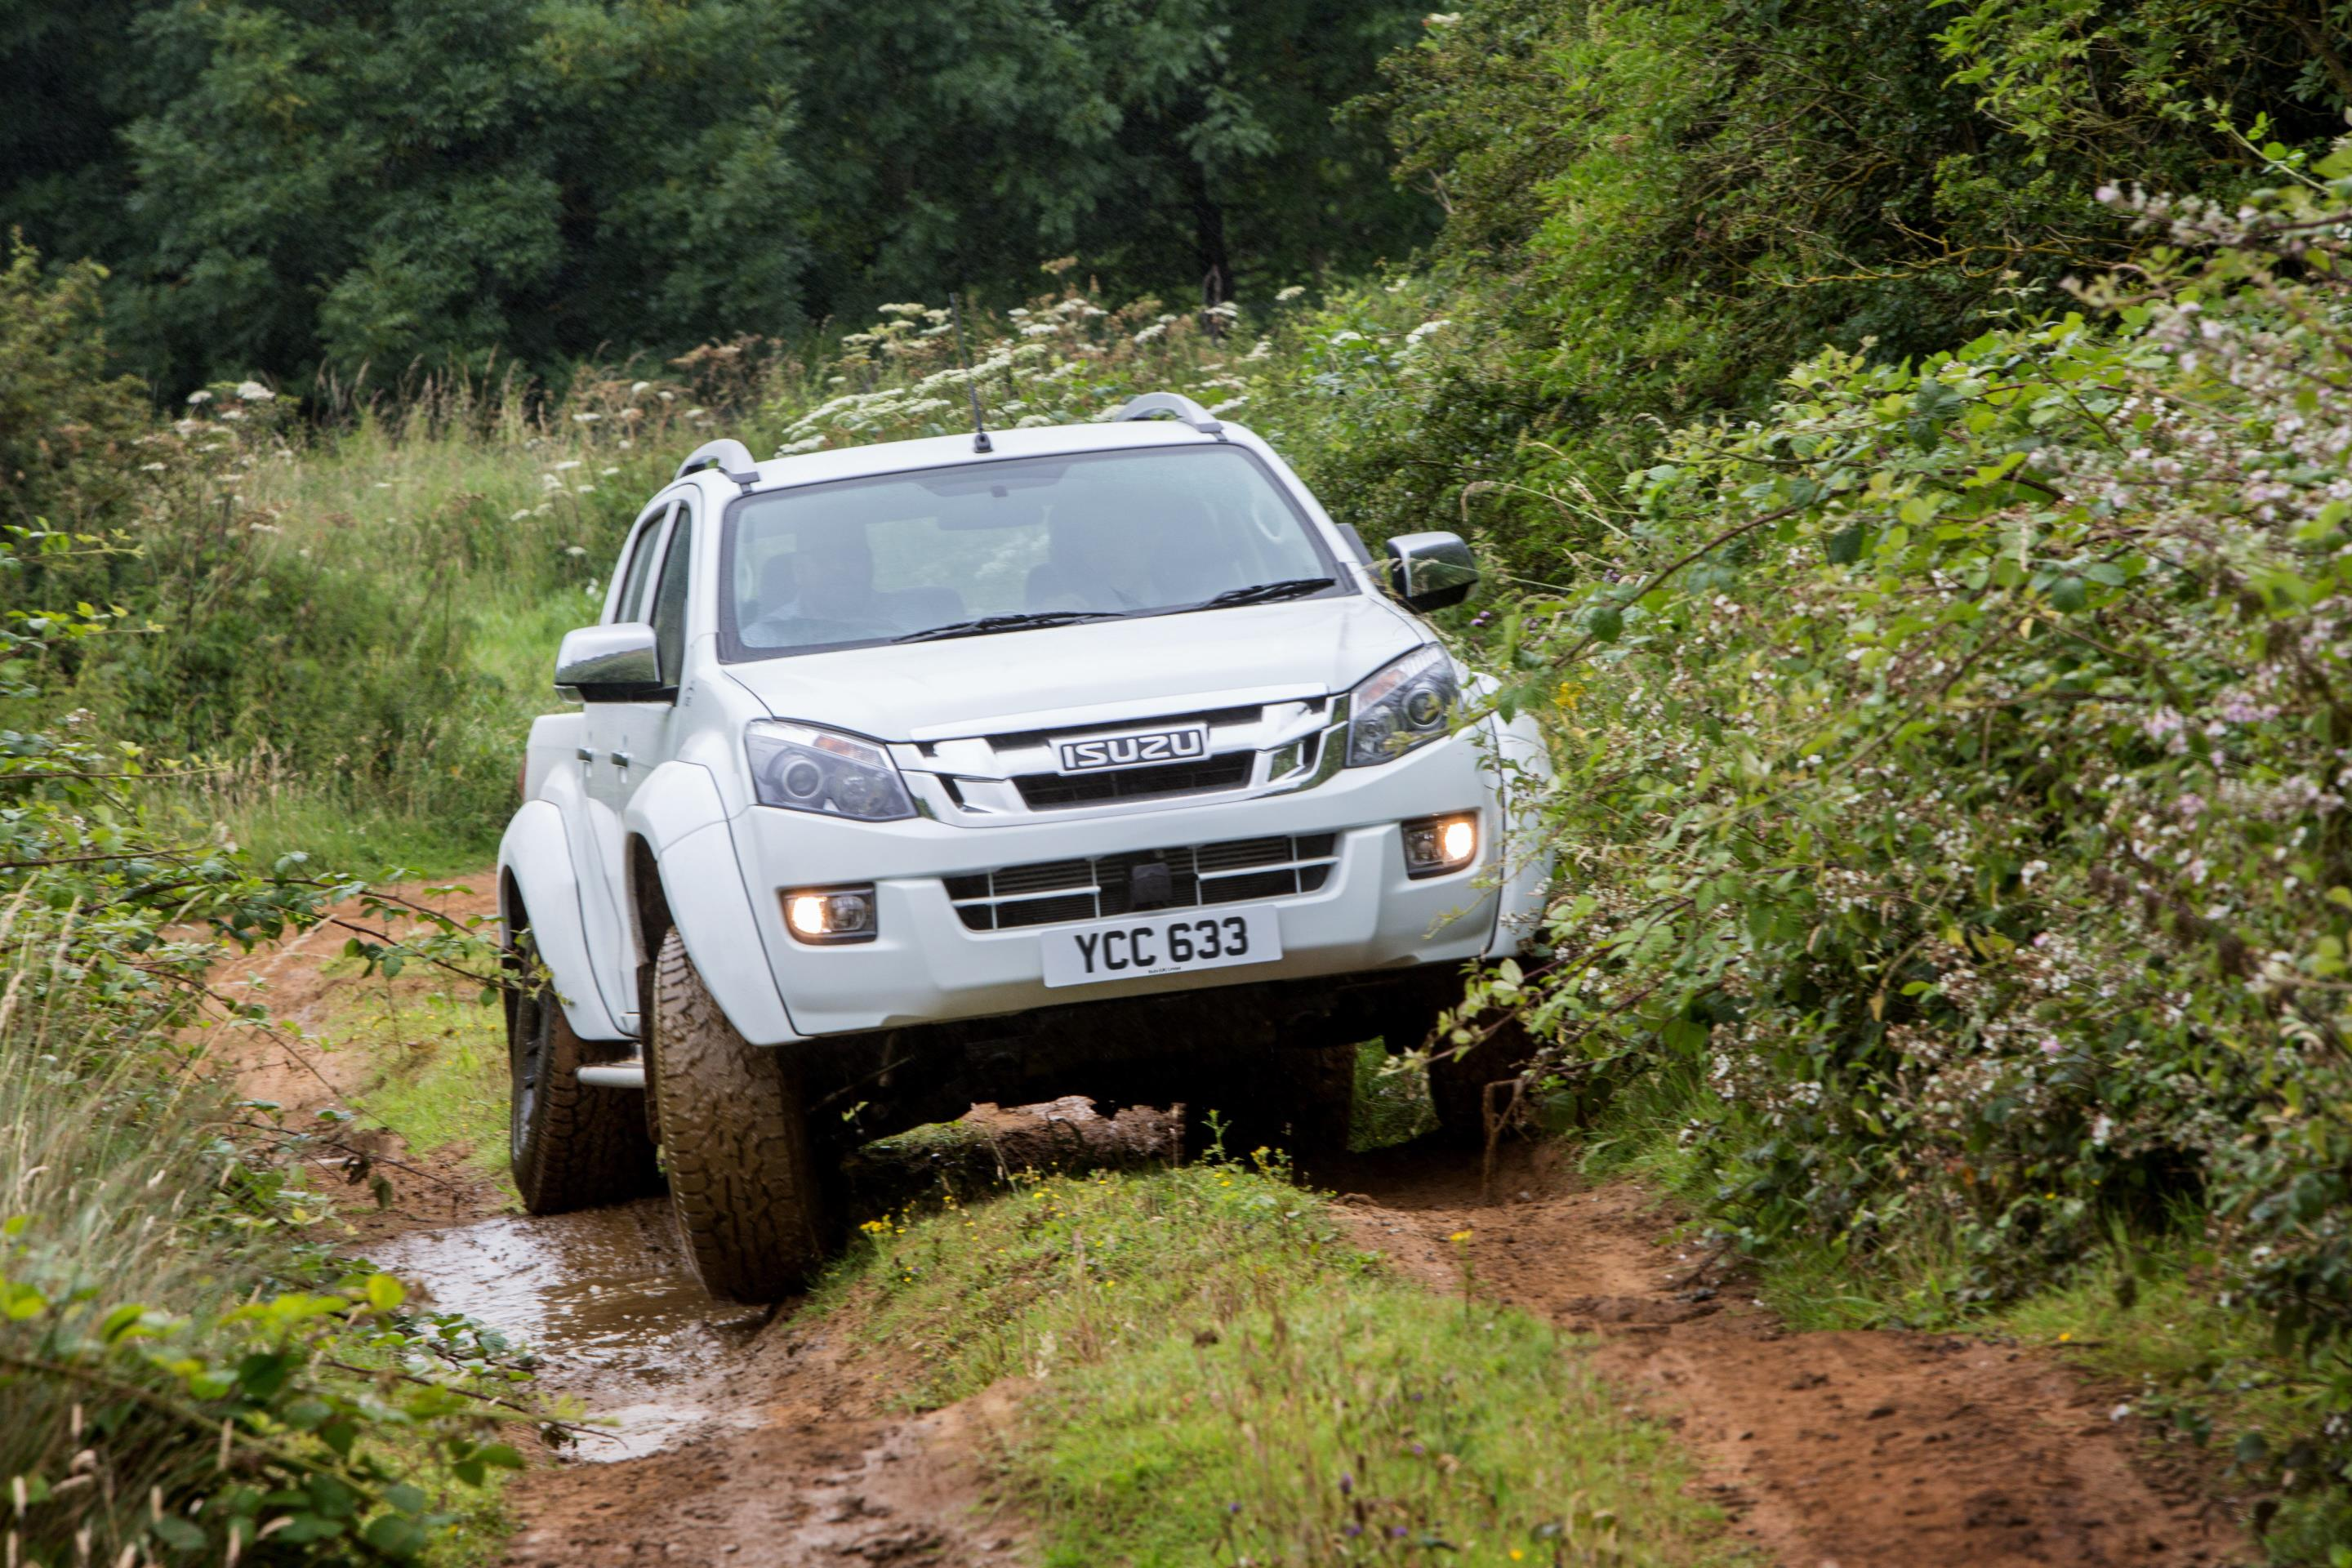 Isuzu D Max Arctic Trucks At35 Price Announced Prepare HD Wallpapers Download free images and photos [musssic.tk]